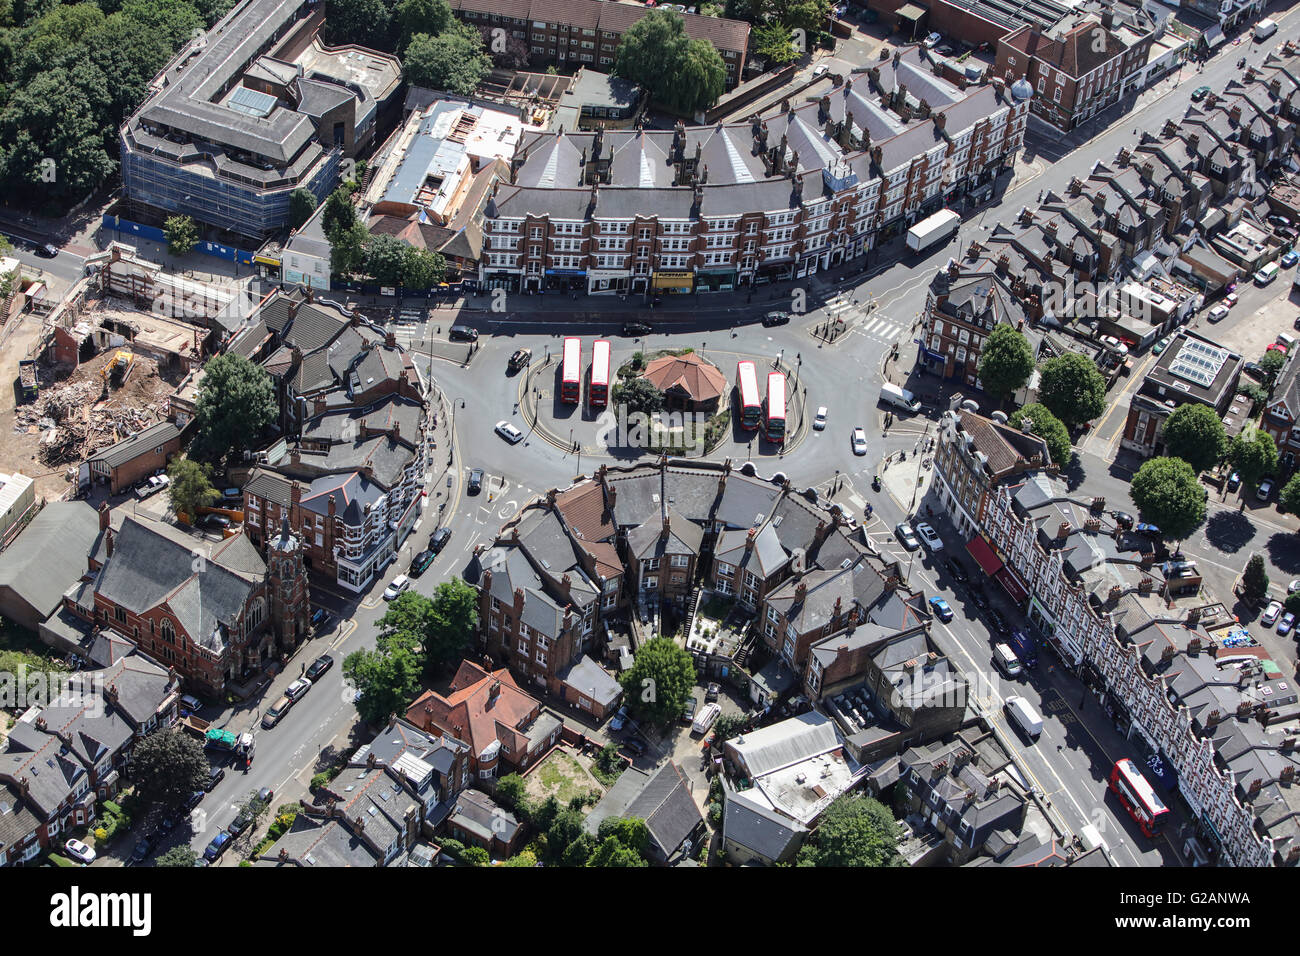 An aerial view of Muswell Hill, a suburb of North London - Stock Image